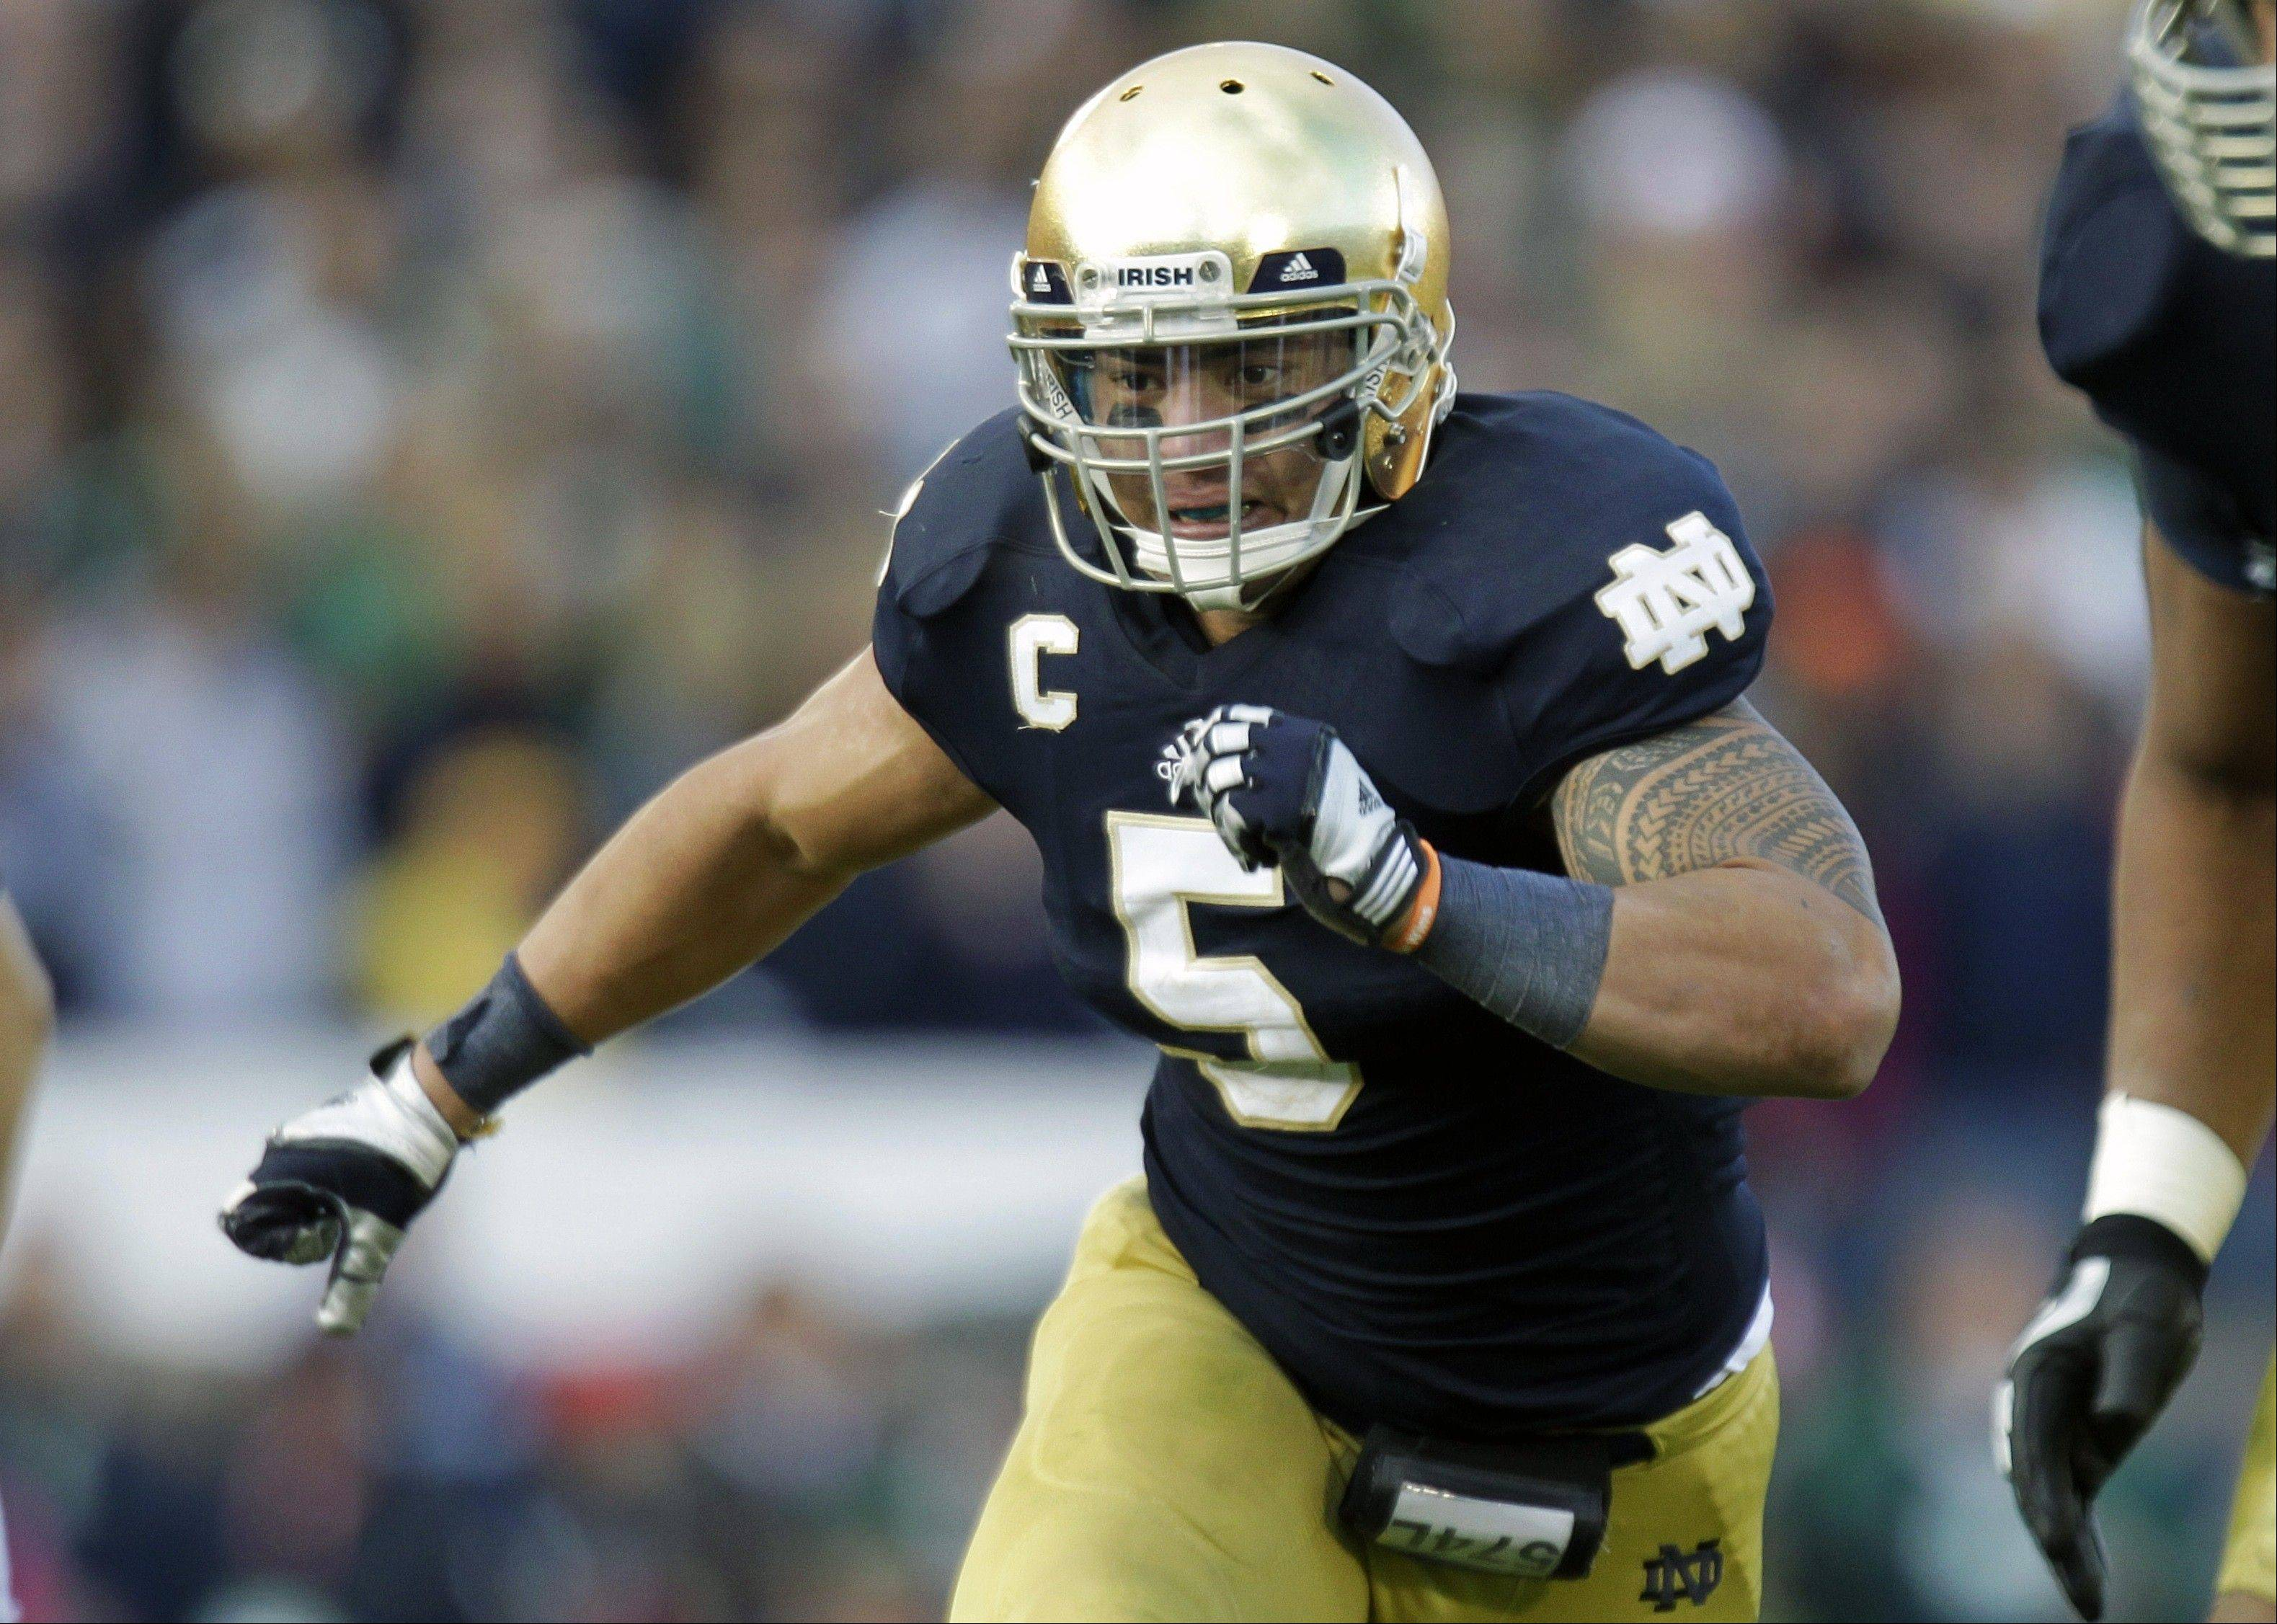 Notre Dame linebacker Manti Te�o plays against BYU earlier this eason. Alabama�s Barrett Jones and Notre Dame�s Te�o are All-Americans and national award winners. They�re also fine students who emphasize faith and postponed big money from the NFL to stay in school.